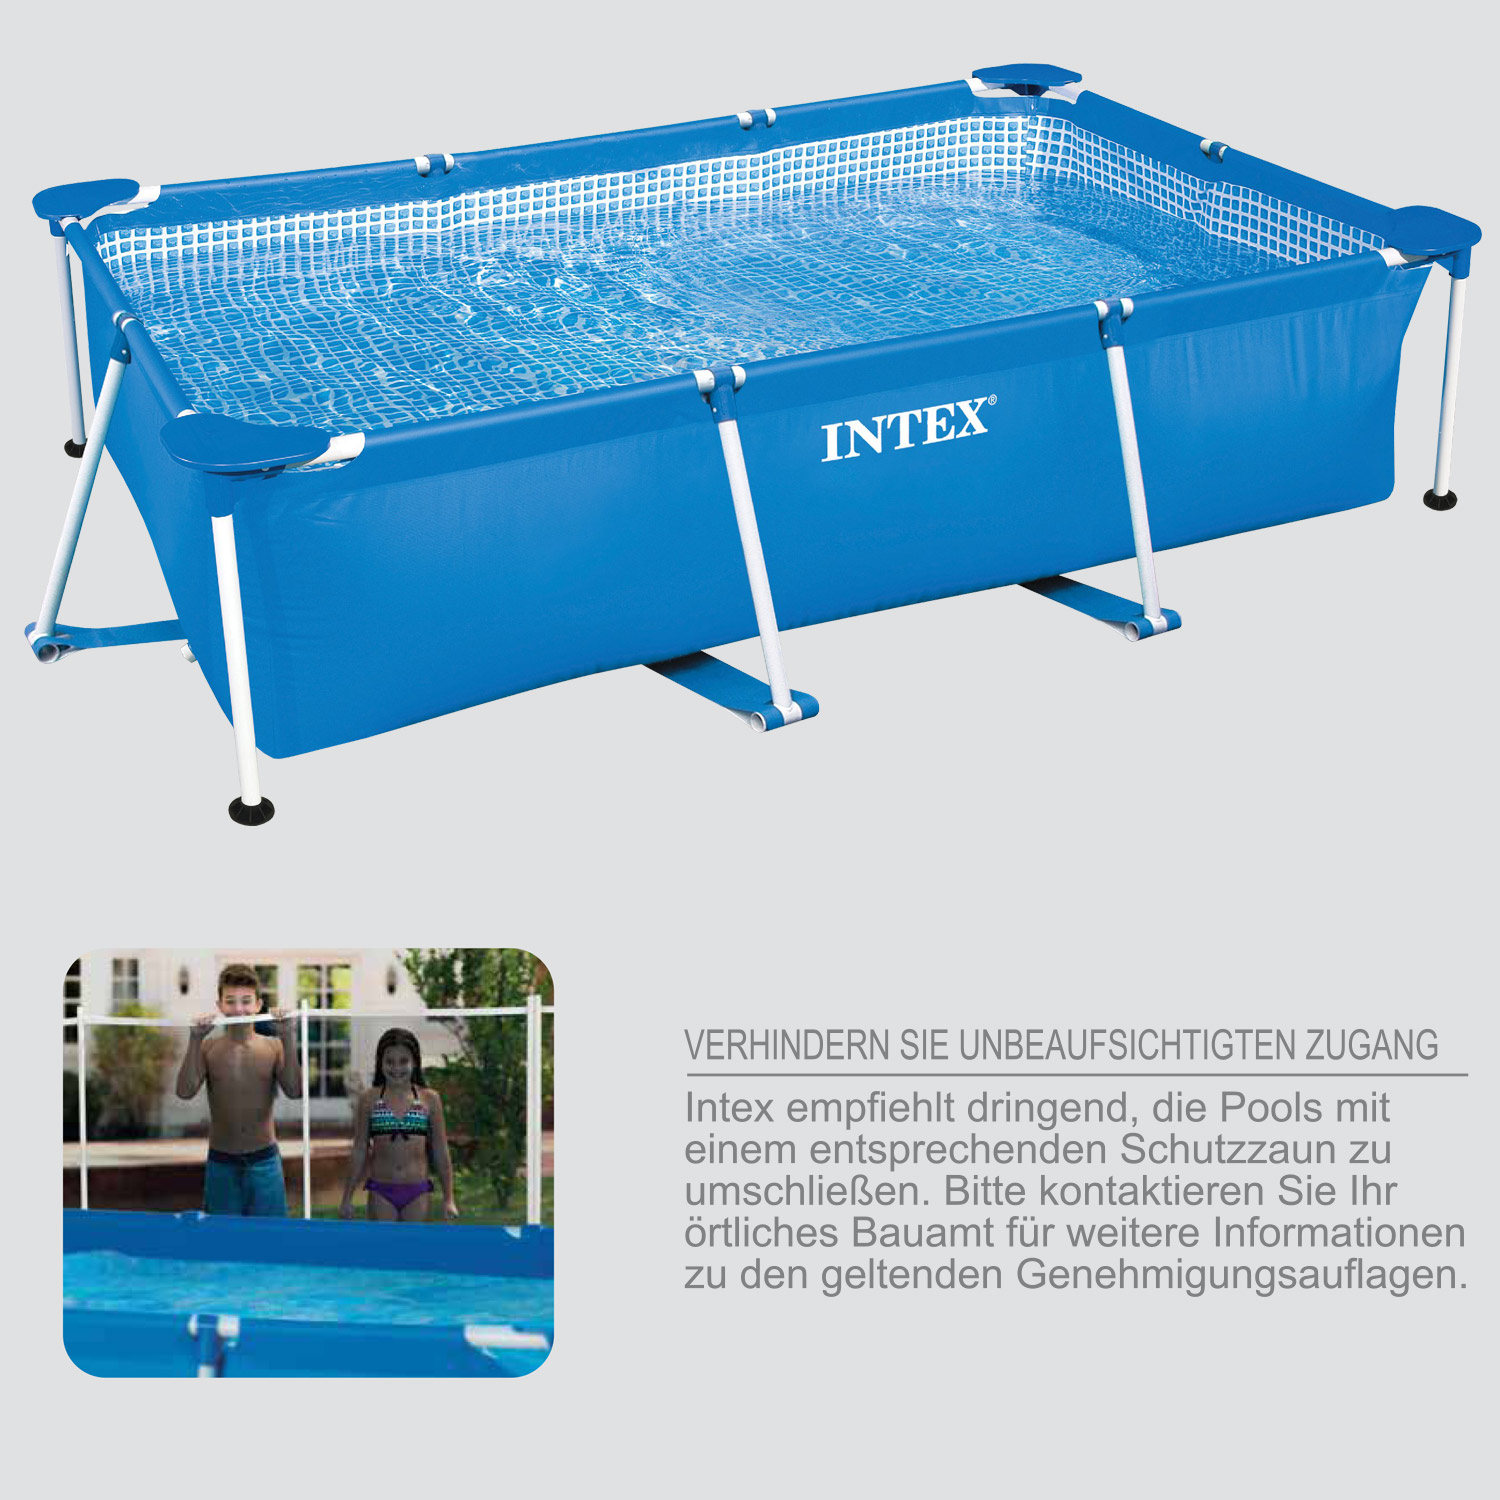 intex 300x200x75 cm swimming pool mit pumpe schwimmbecken. Black Bedroom Furniture Sets. Home Design Ideas